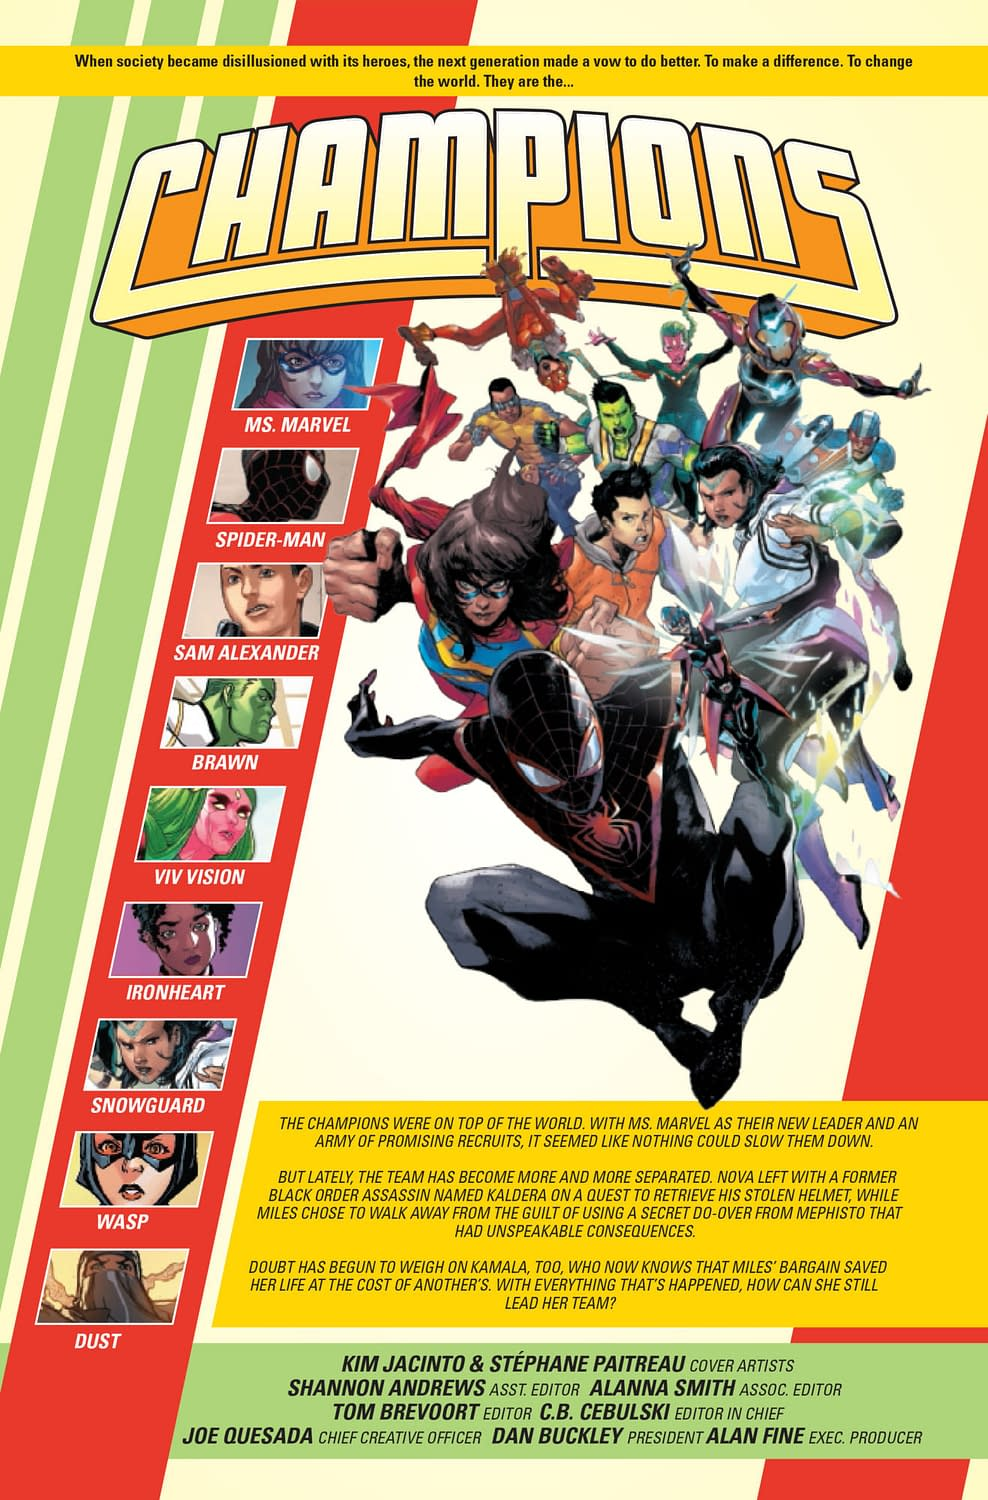 Champions #7: When Heroes Cry [Preview]